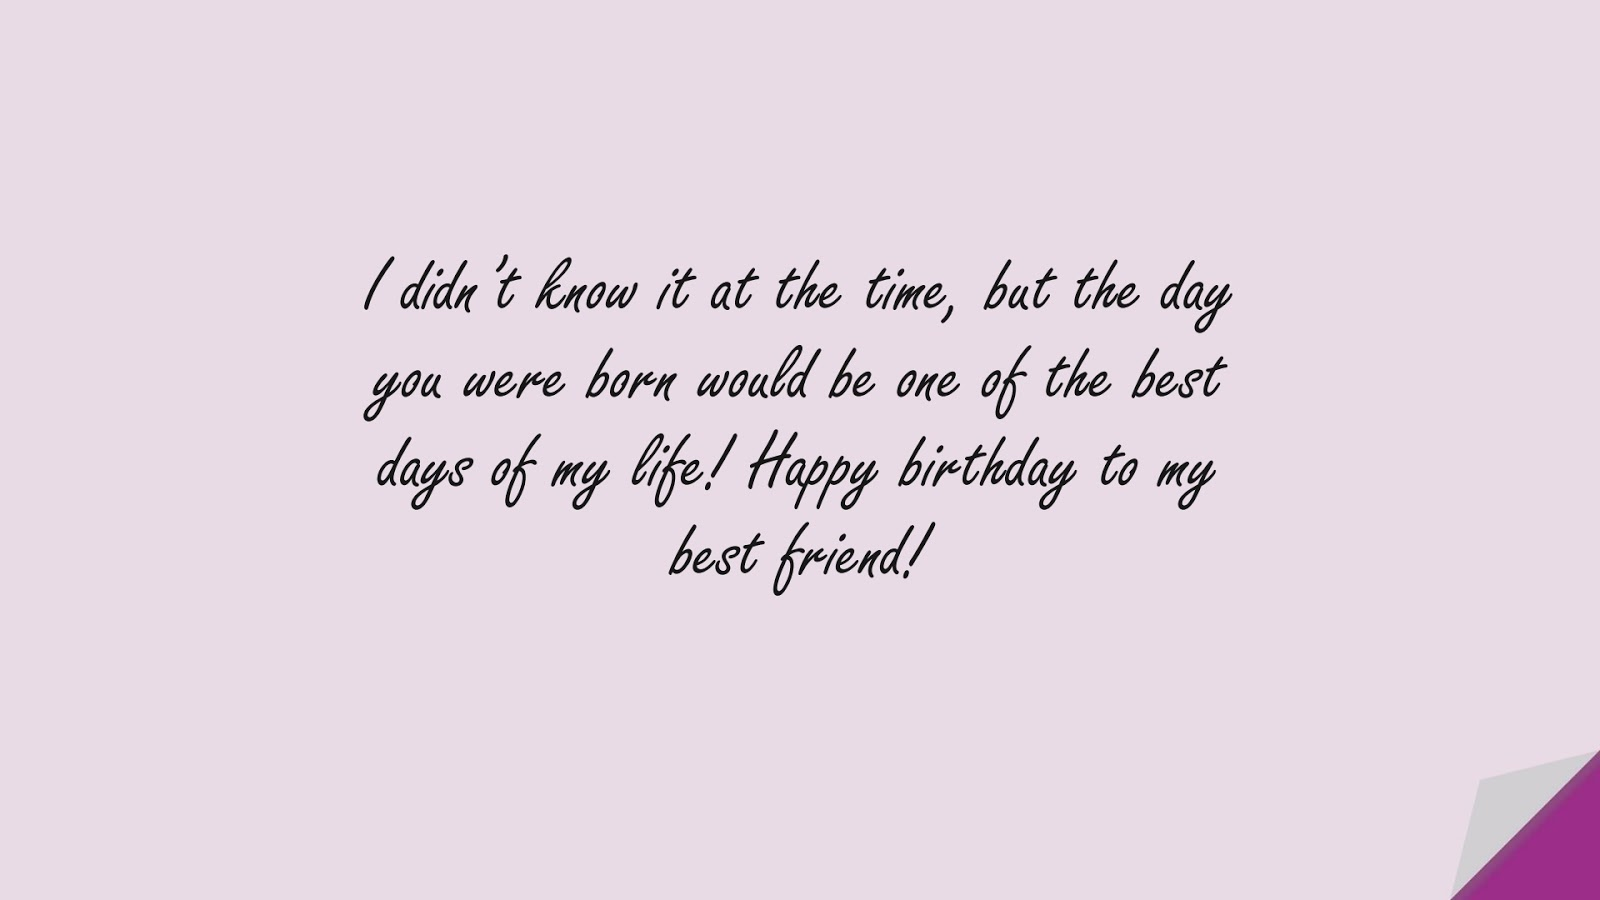 I didn't know it at the time, but the day you were born would be one of the best days of my life! Happy birthday to my best friend!FALSE